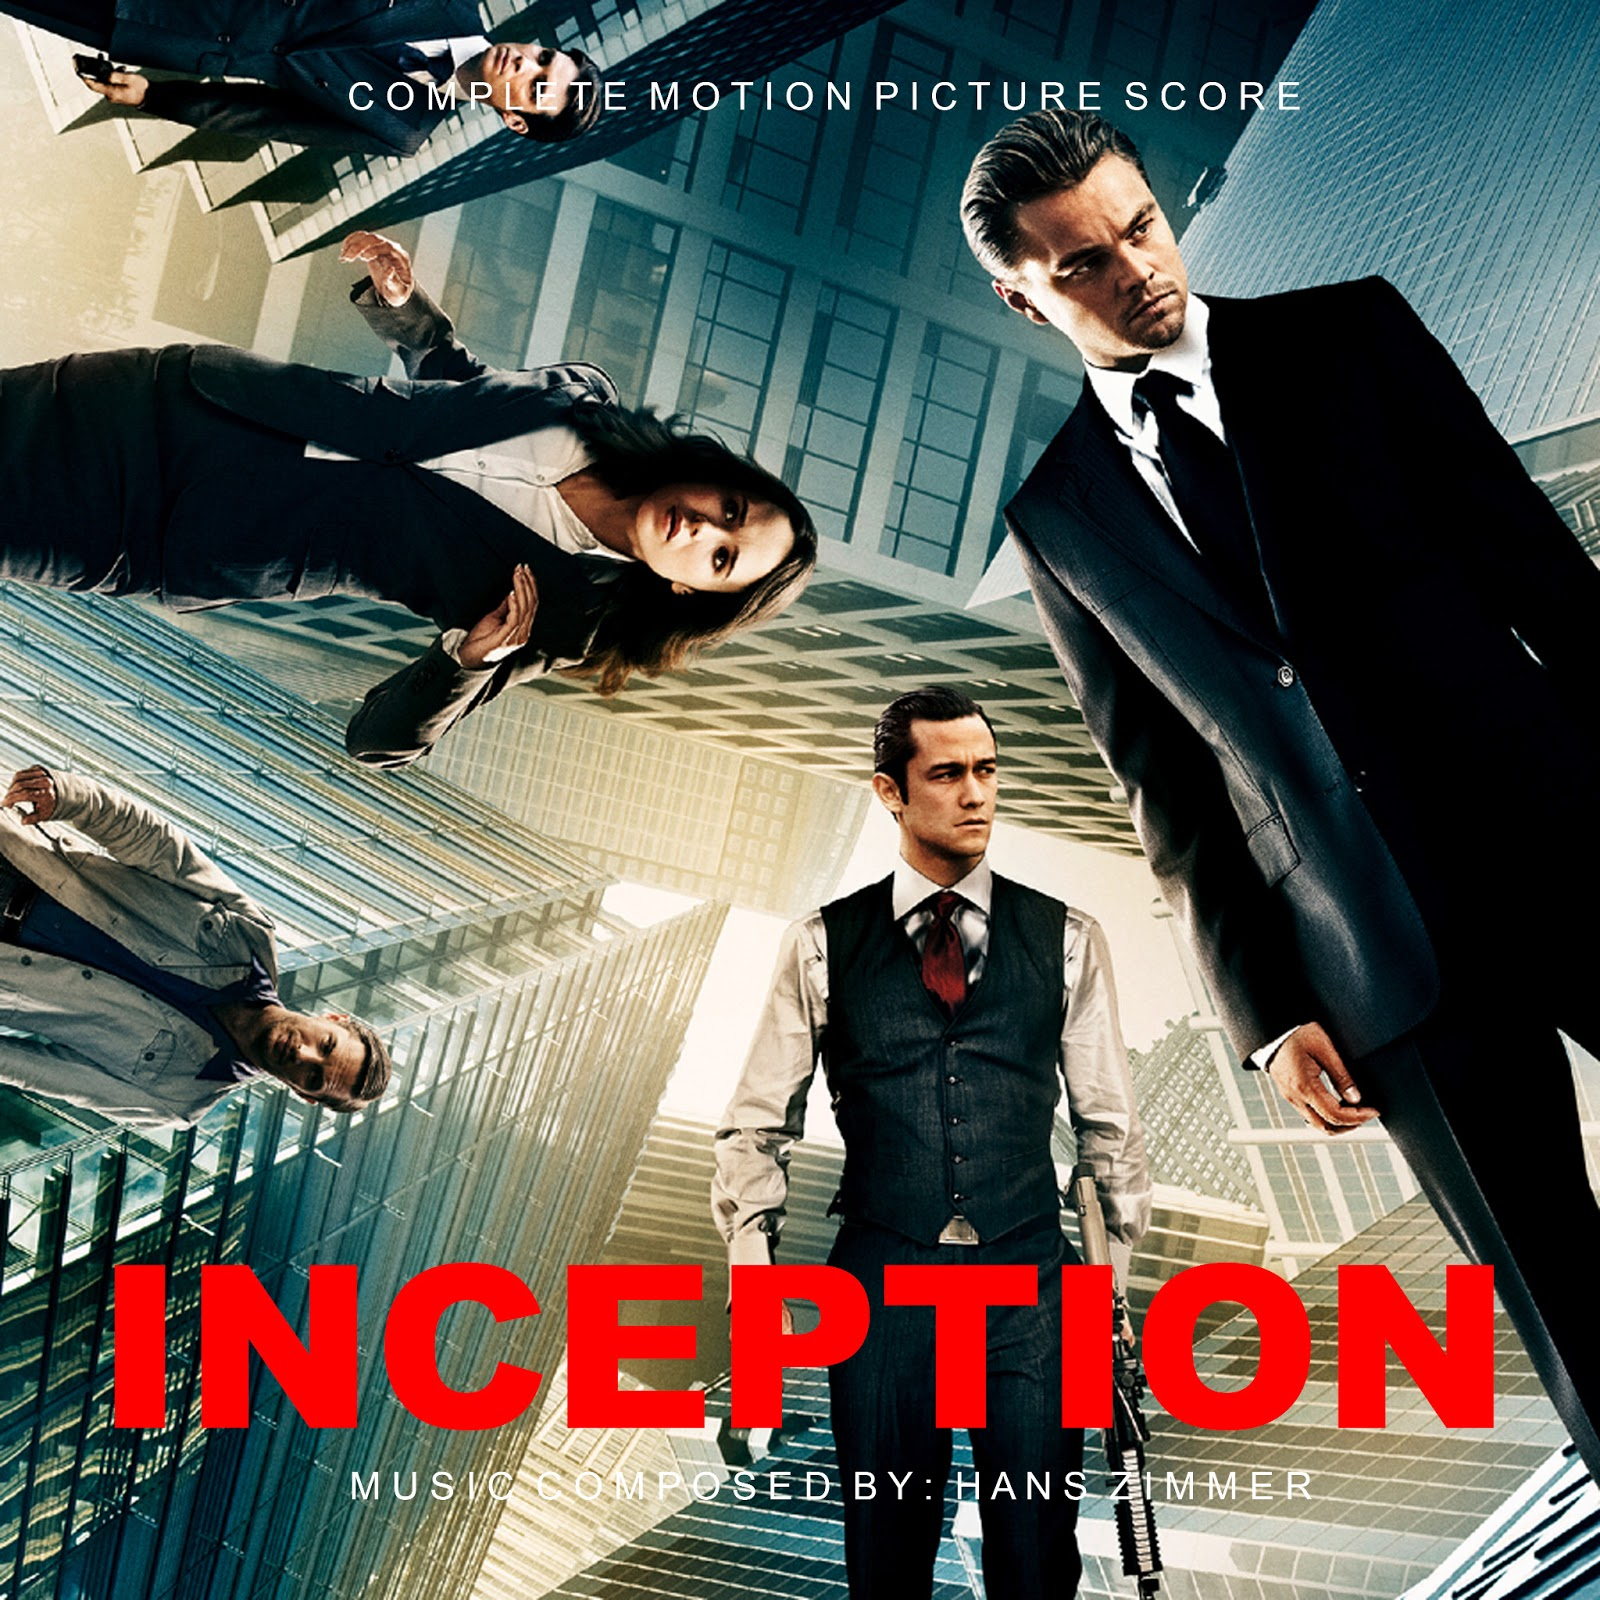 thesis inception Thesis 2: if inception was designed to plant an idea in the audience's head, it was a failure once a film critic has decided that inception is a movie about making movies, it generally takes him or her another paragraph to decide that the whole film is an attempt by nolan (the architect) to plant an idea (perform an inception) on the audience.